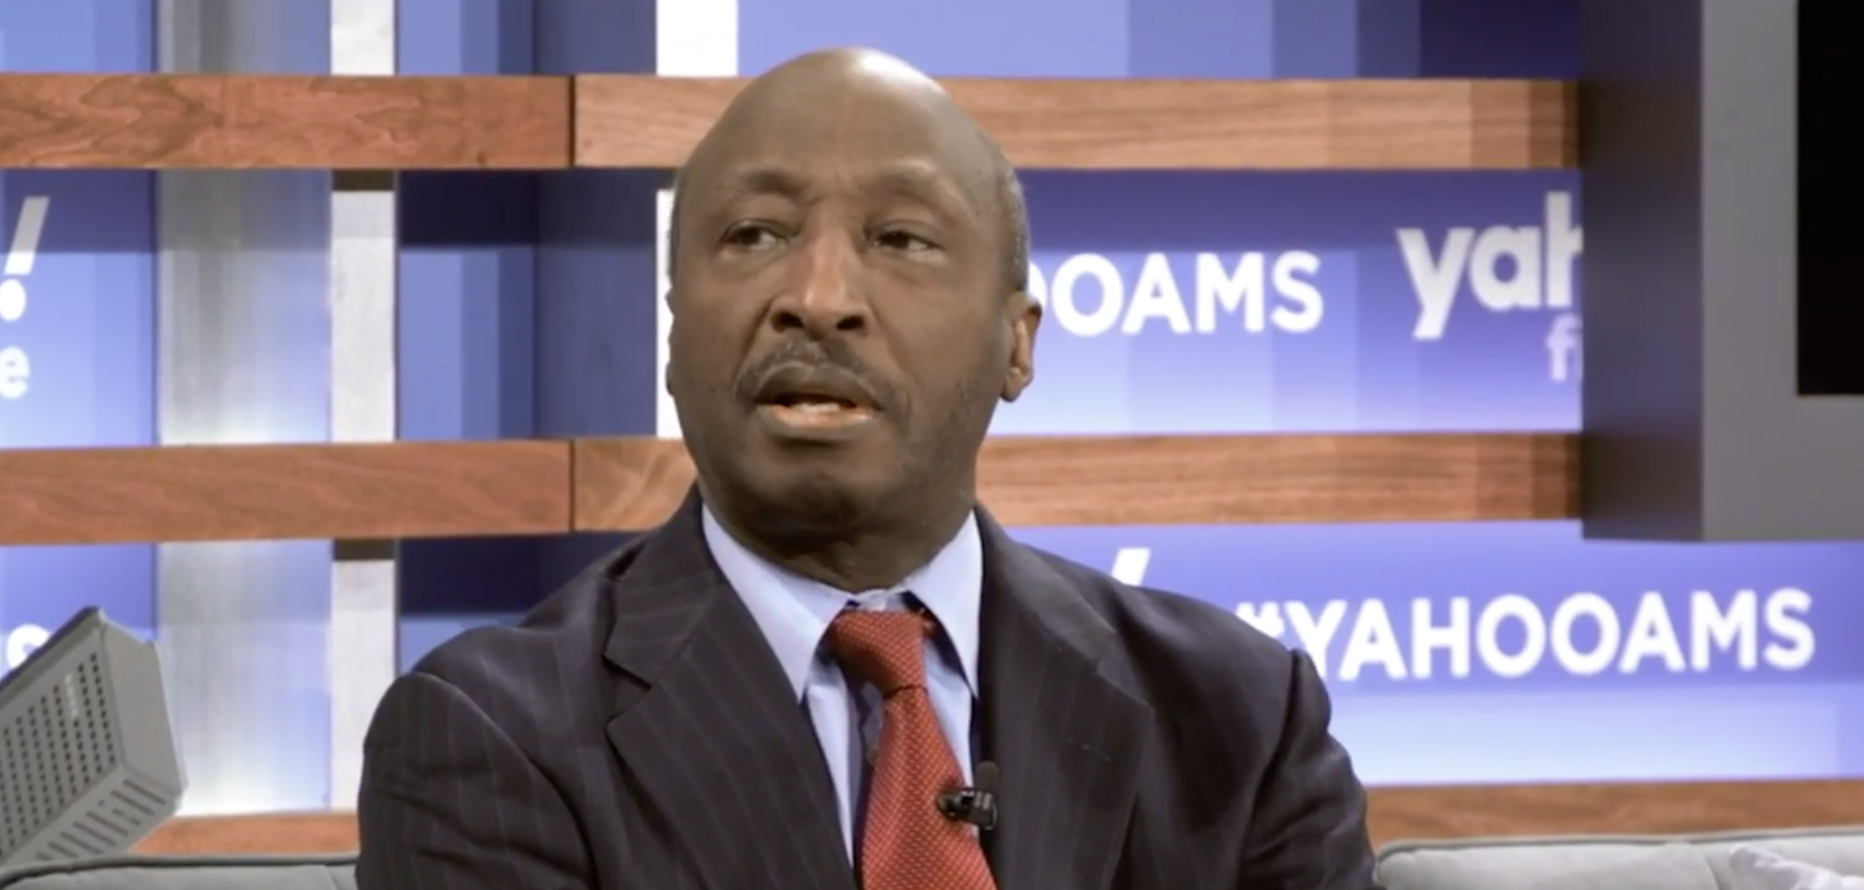 Merck CEO Kenneth Frazier seems skeptical of Medicare for all